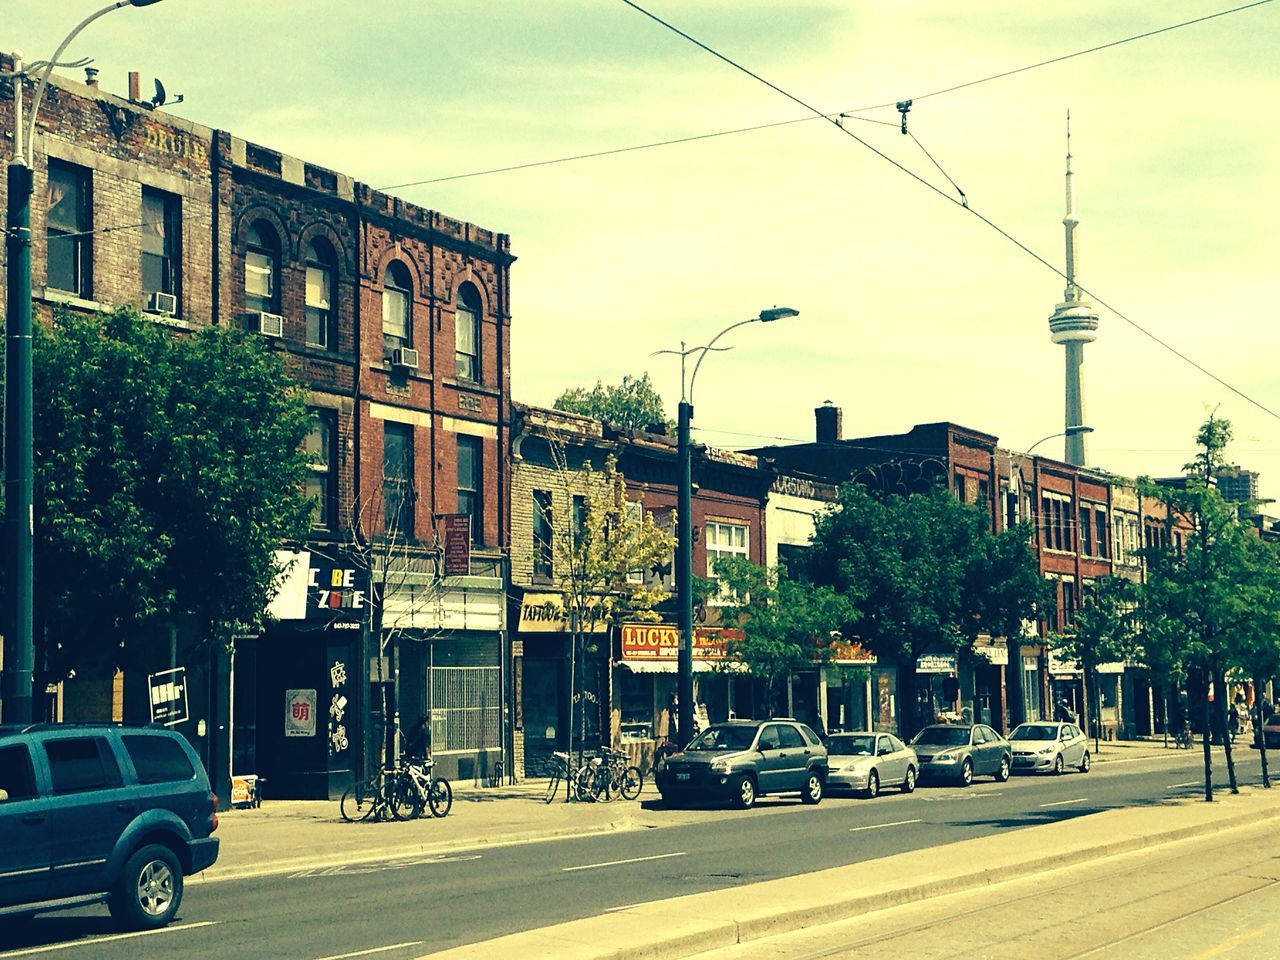 Urban Landscape The Street Photographer - 2015 EyeEm Awards Streetscape CN Tower - Toronto Chinatown Urbanphotography Torontophotographer Commercial Street Local Artist Taking Photos